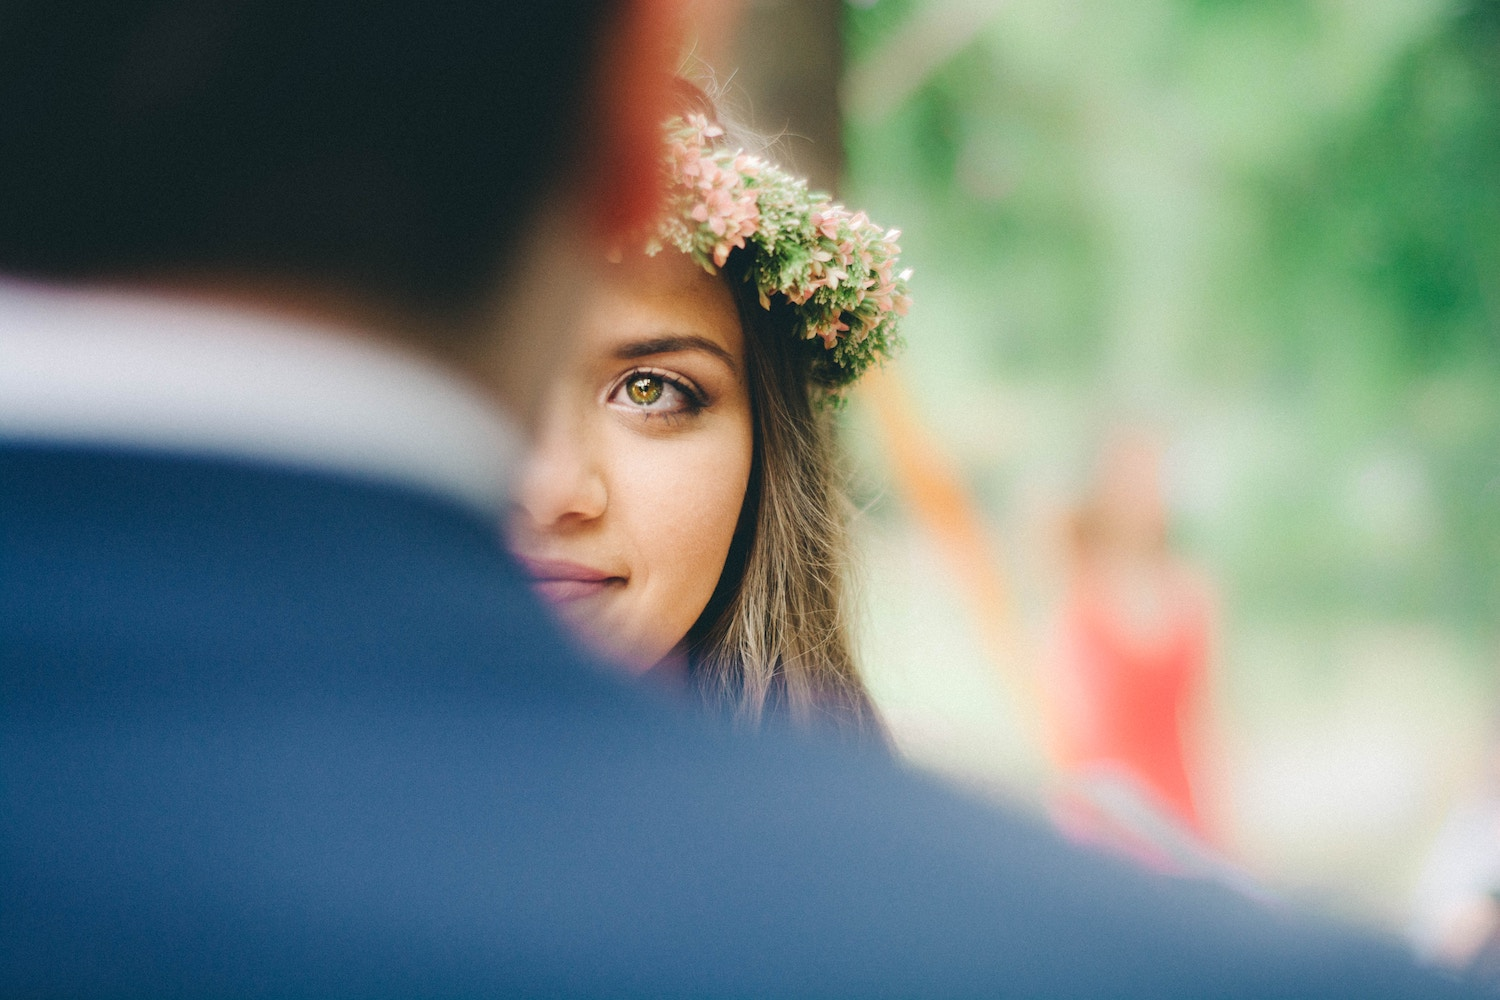 Highlight Film - We condense all the meaningful events of your special day into a 5-10 minute film highlighting key elements and telling the story of your big wedding day.